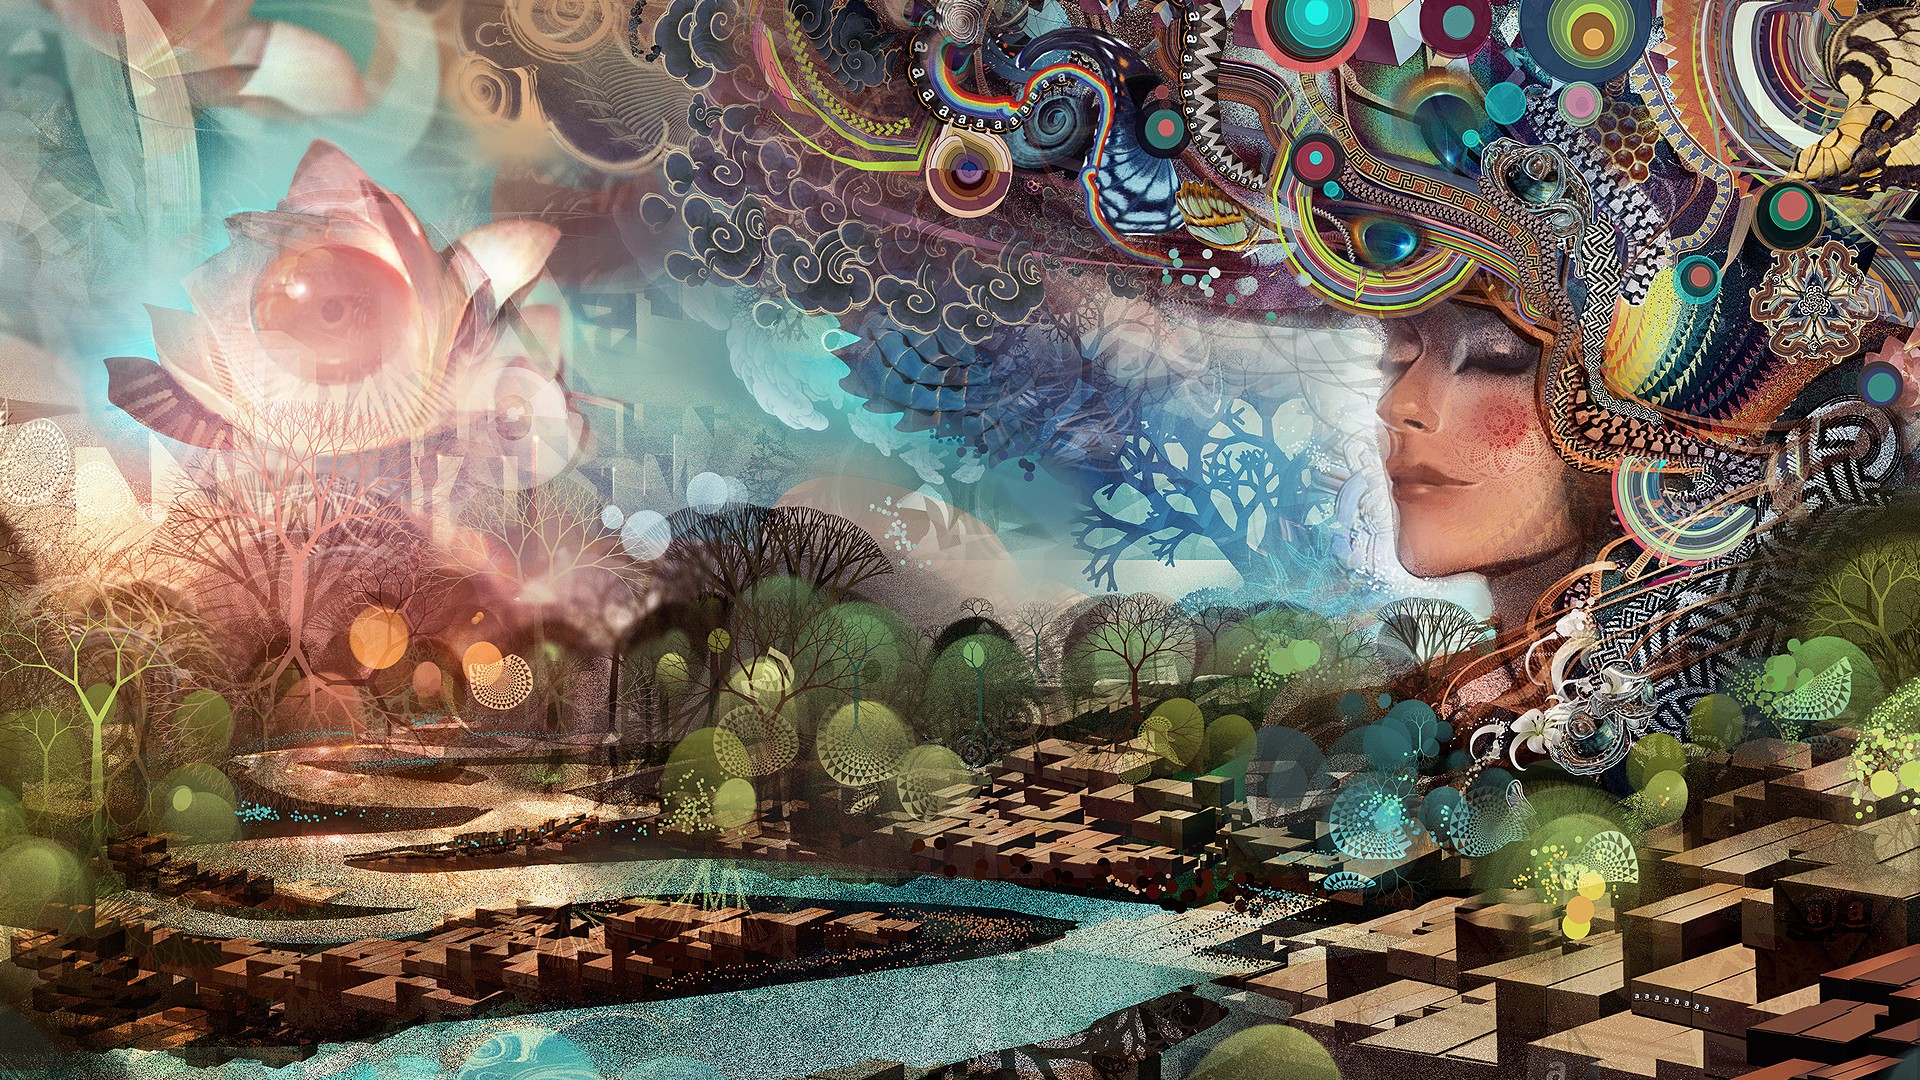 General 1920x1080 digital art painting women face artwork fantasy art abstract trees closed eyes ornamented water geometry circle 3D Android Jones